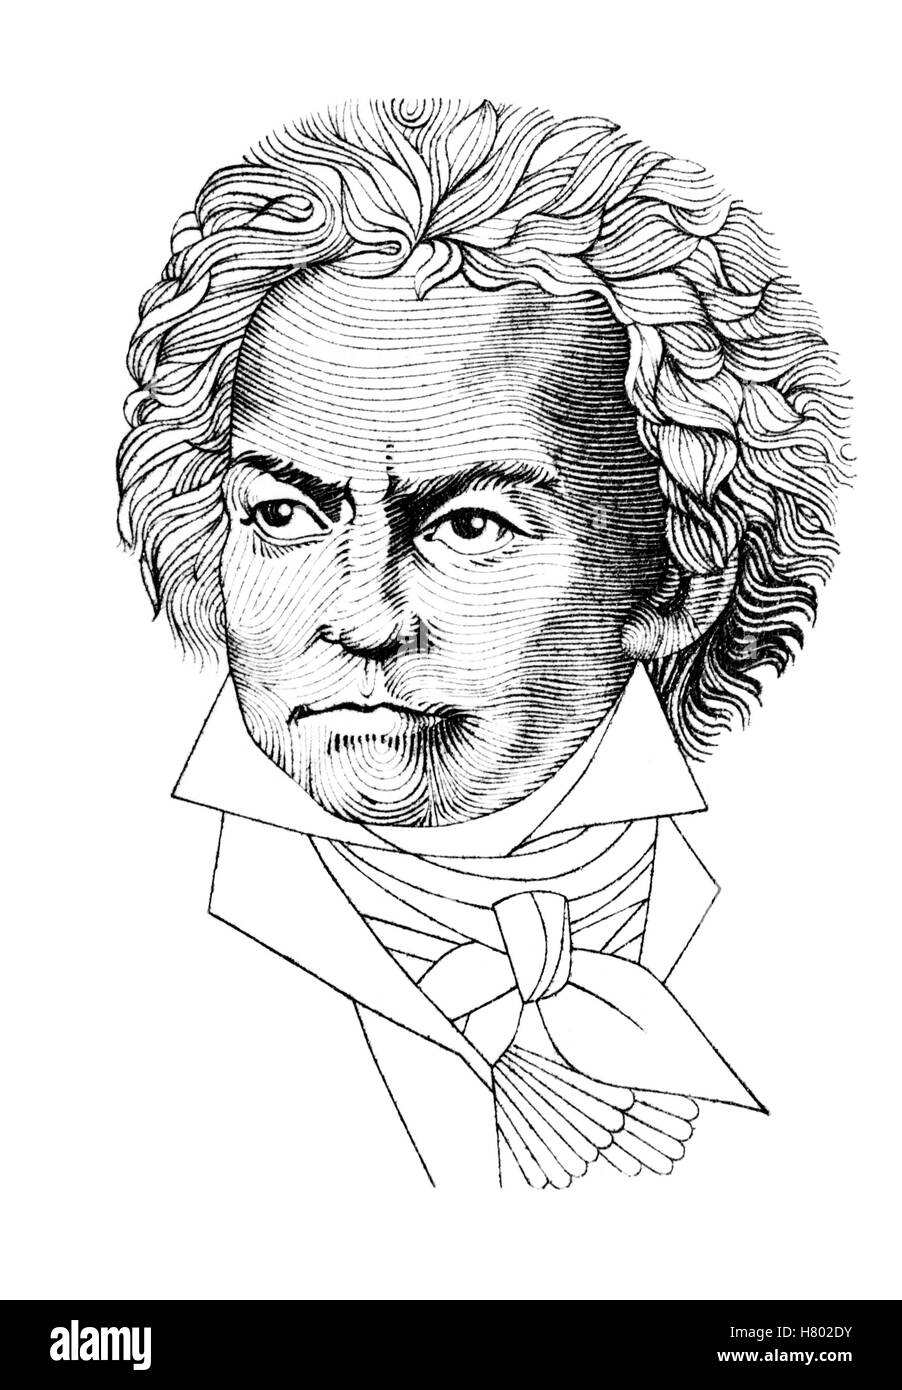 Portrait of Ludwig van Beethoven (German composer; 1770-1827) cut out from German postage stamp. - Stock Image